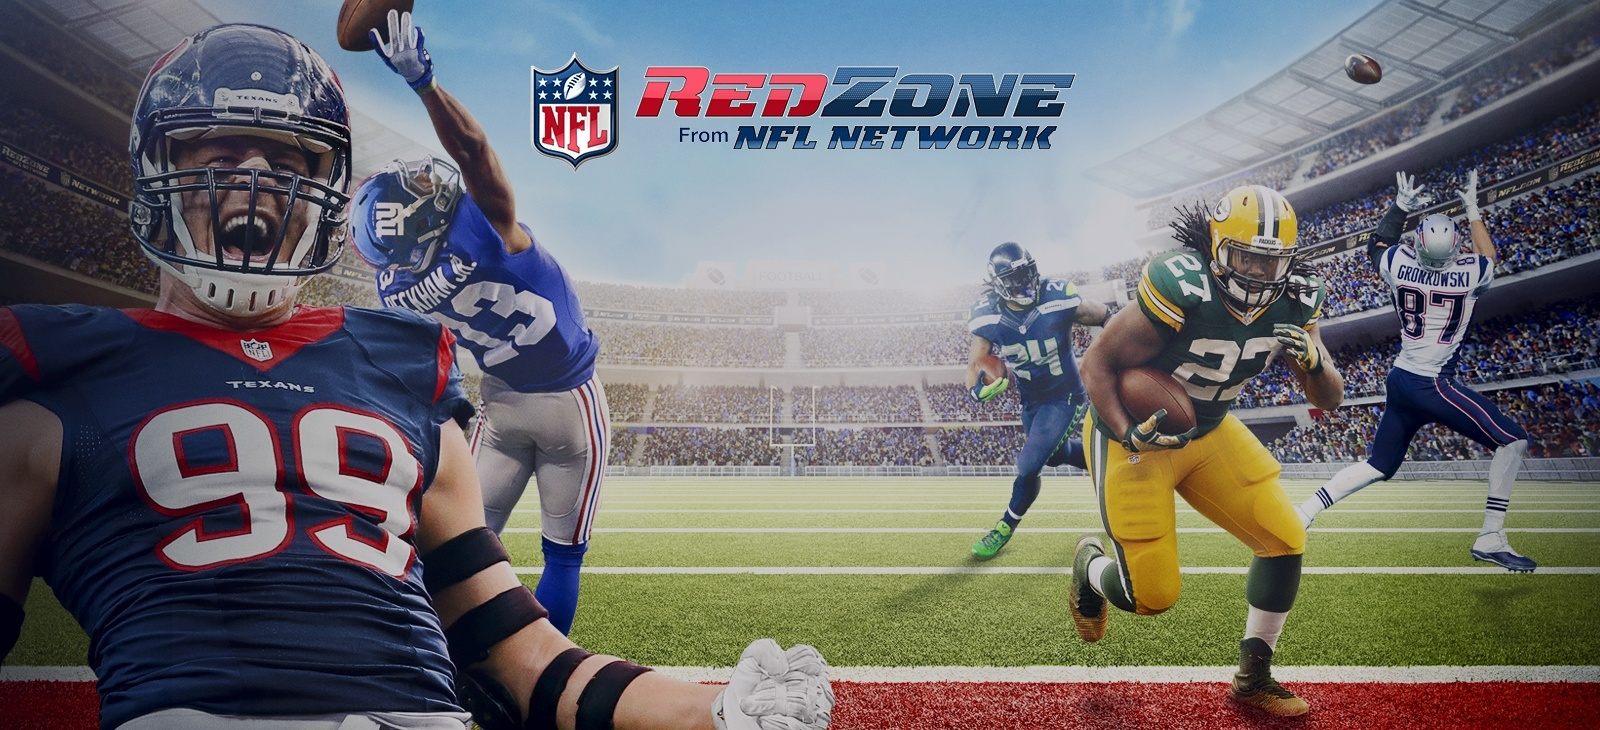 nfl red zone fathers day gift ideas 2016